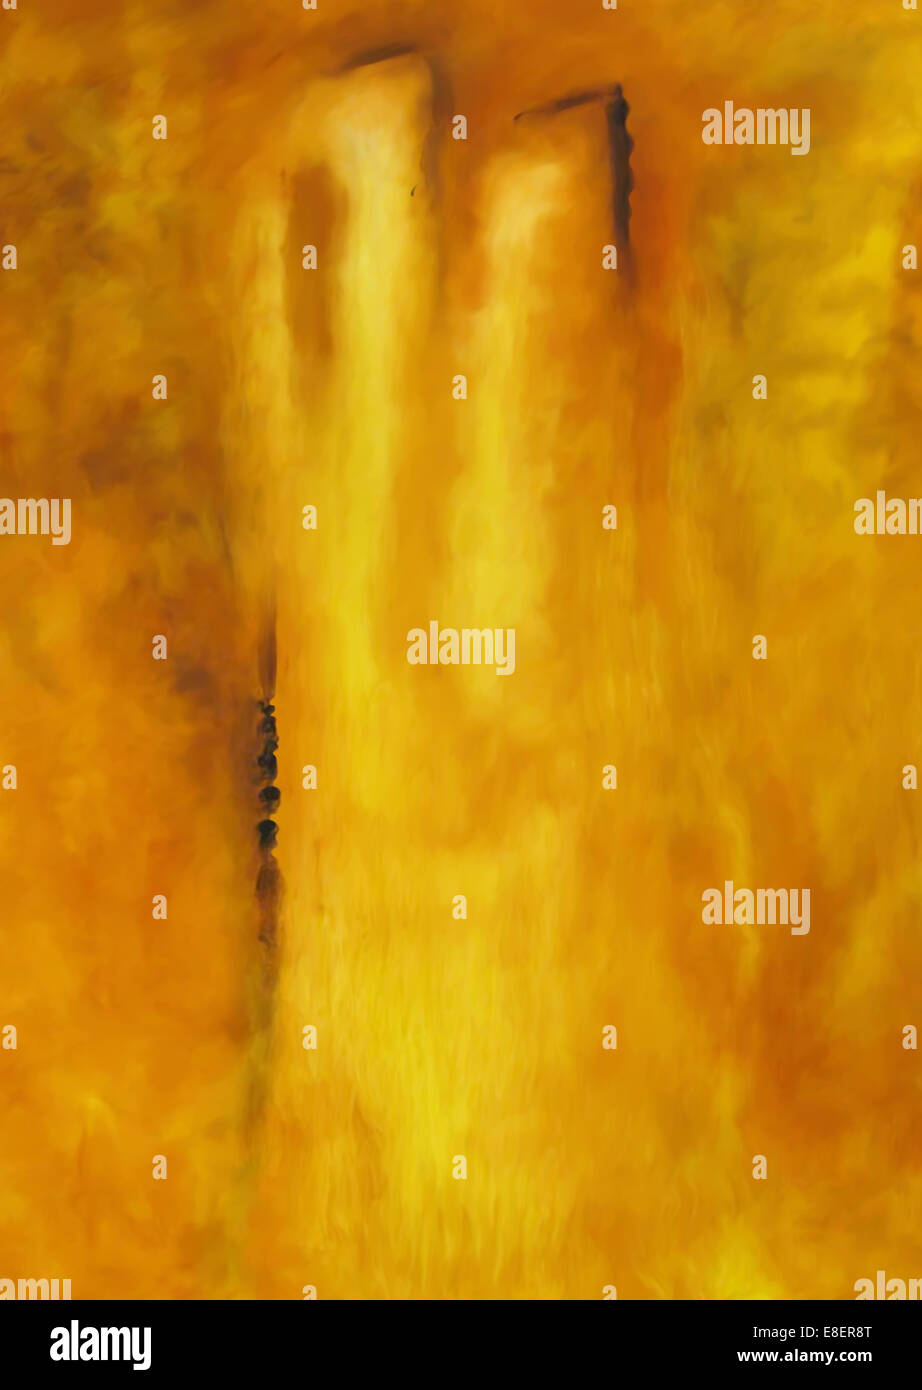 Yellow rectangles abstract. Abstract organic yellow painting background texture - Stock Image